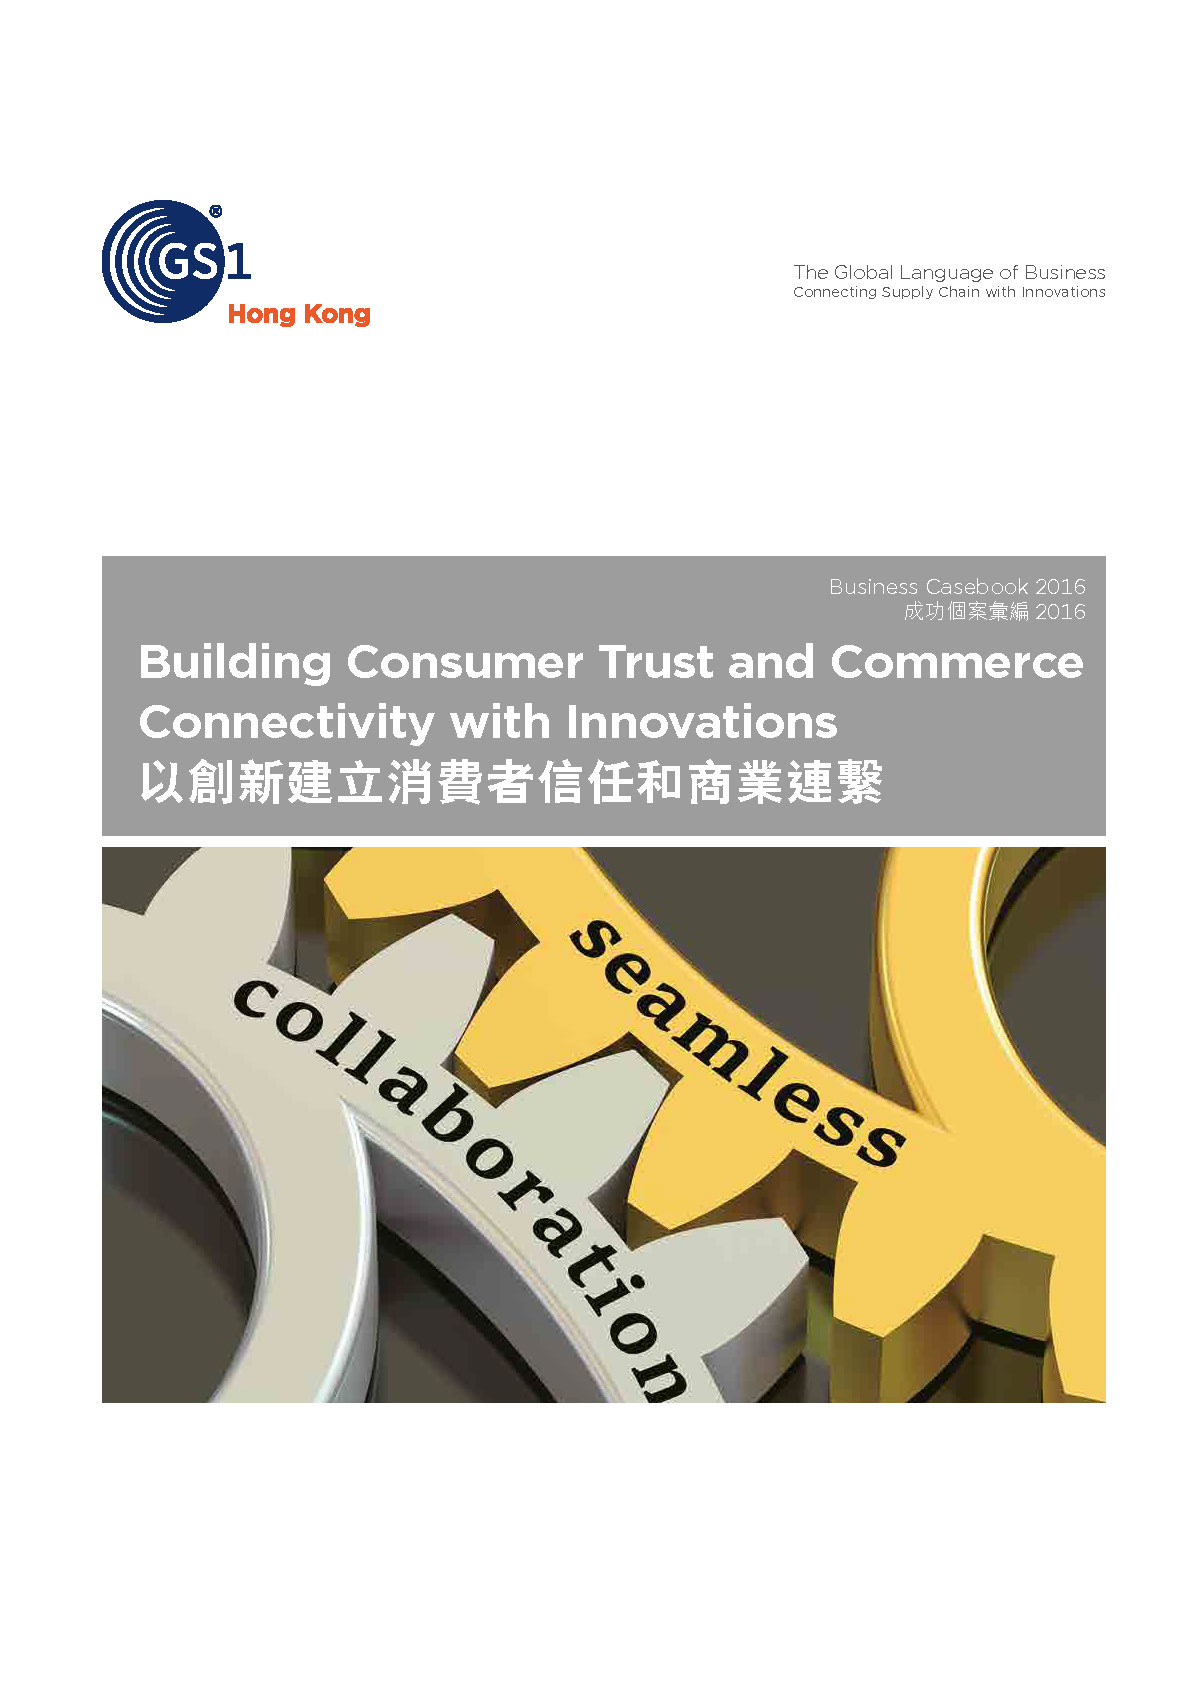 GS1 HK Business Casebook 2016